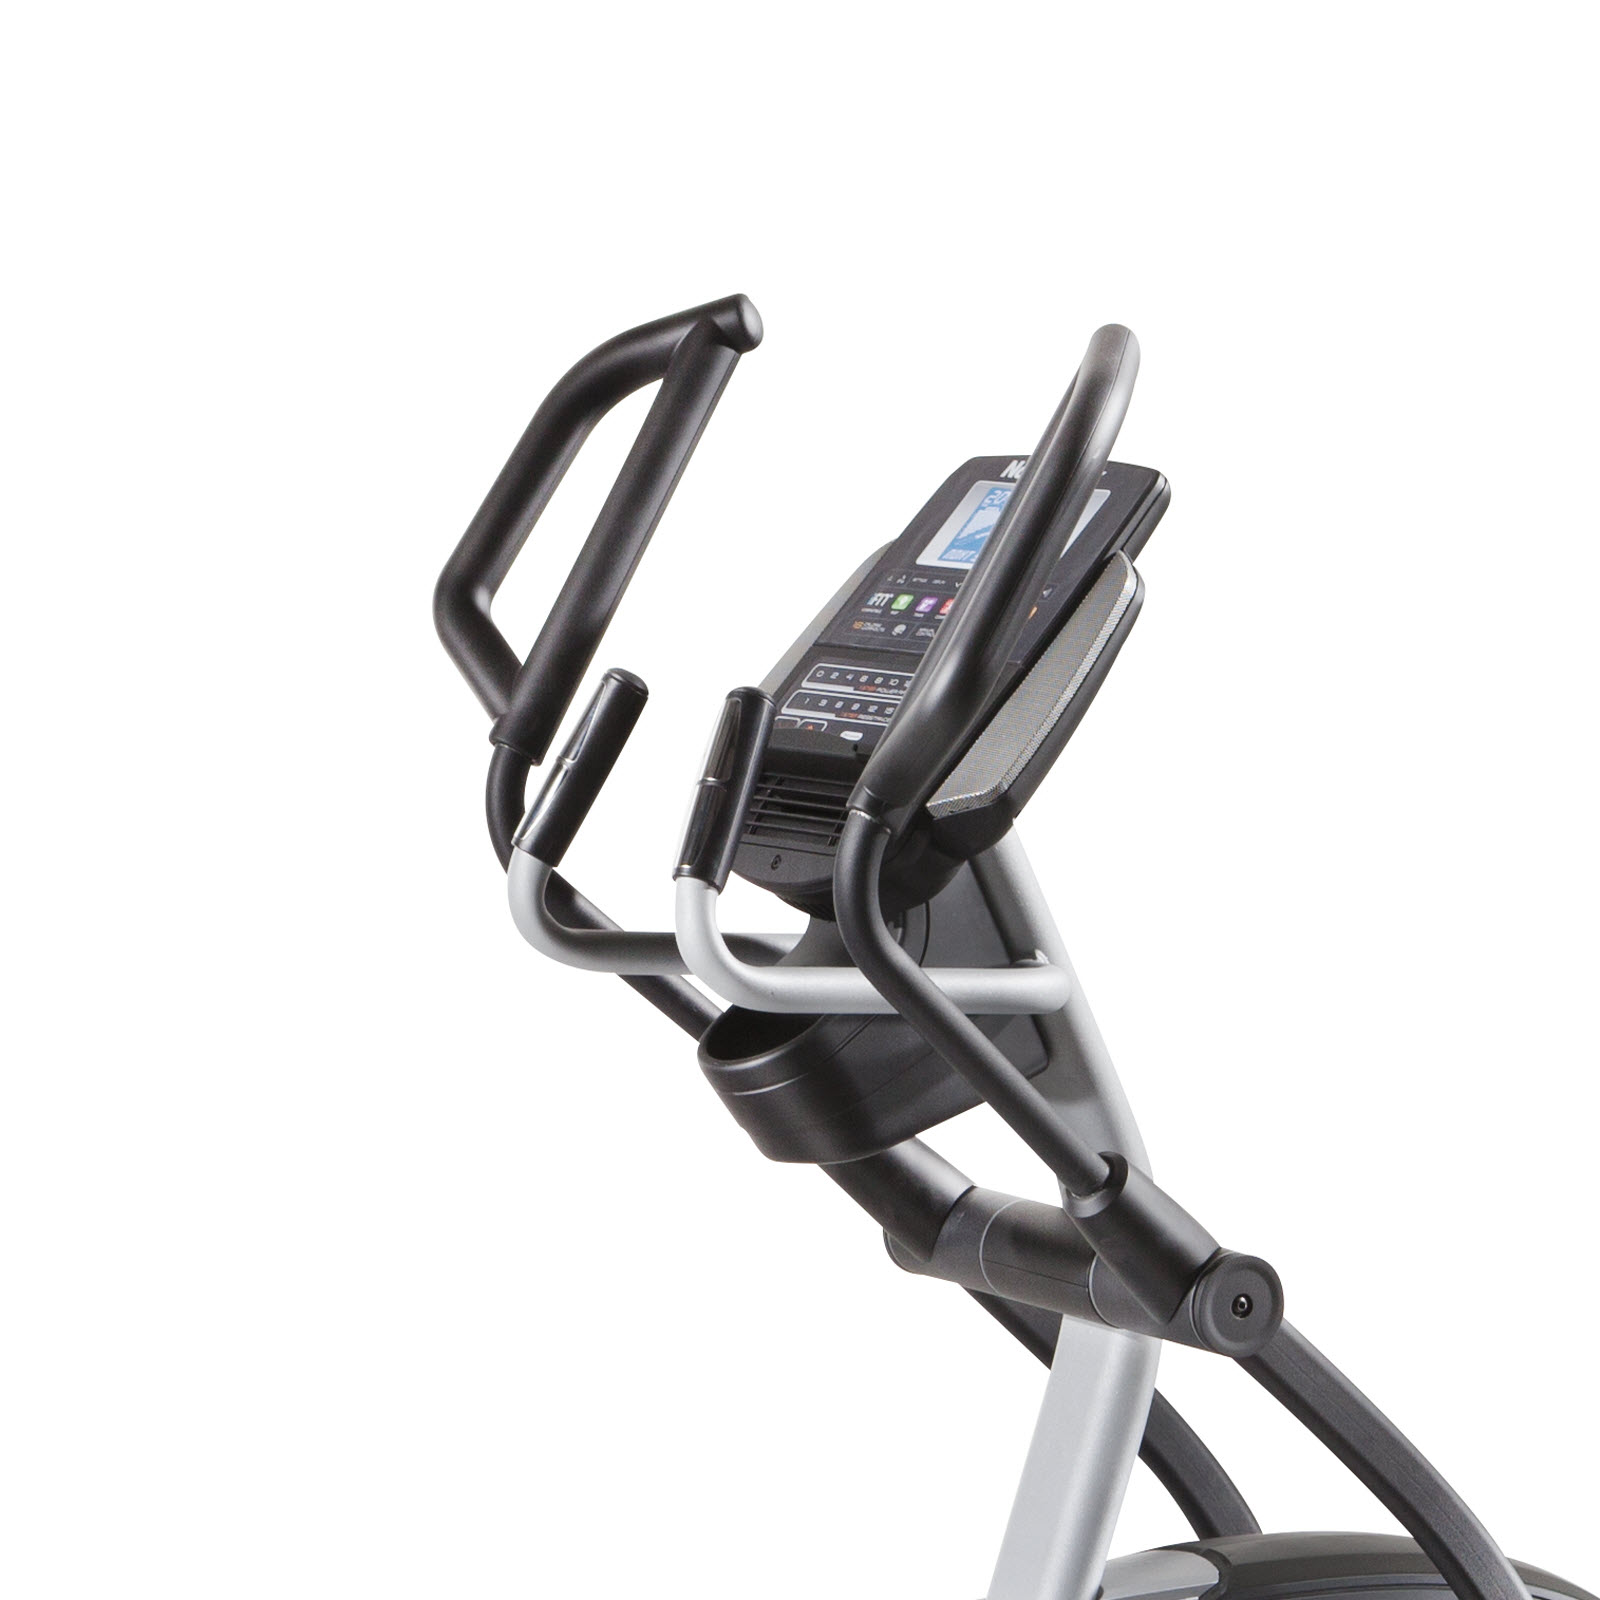 NordicTrack Elite 10.7 Elliptical